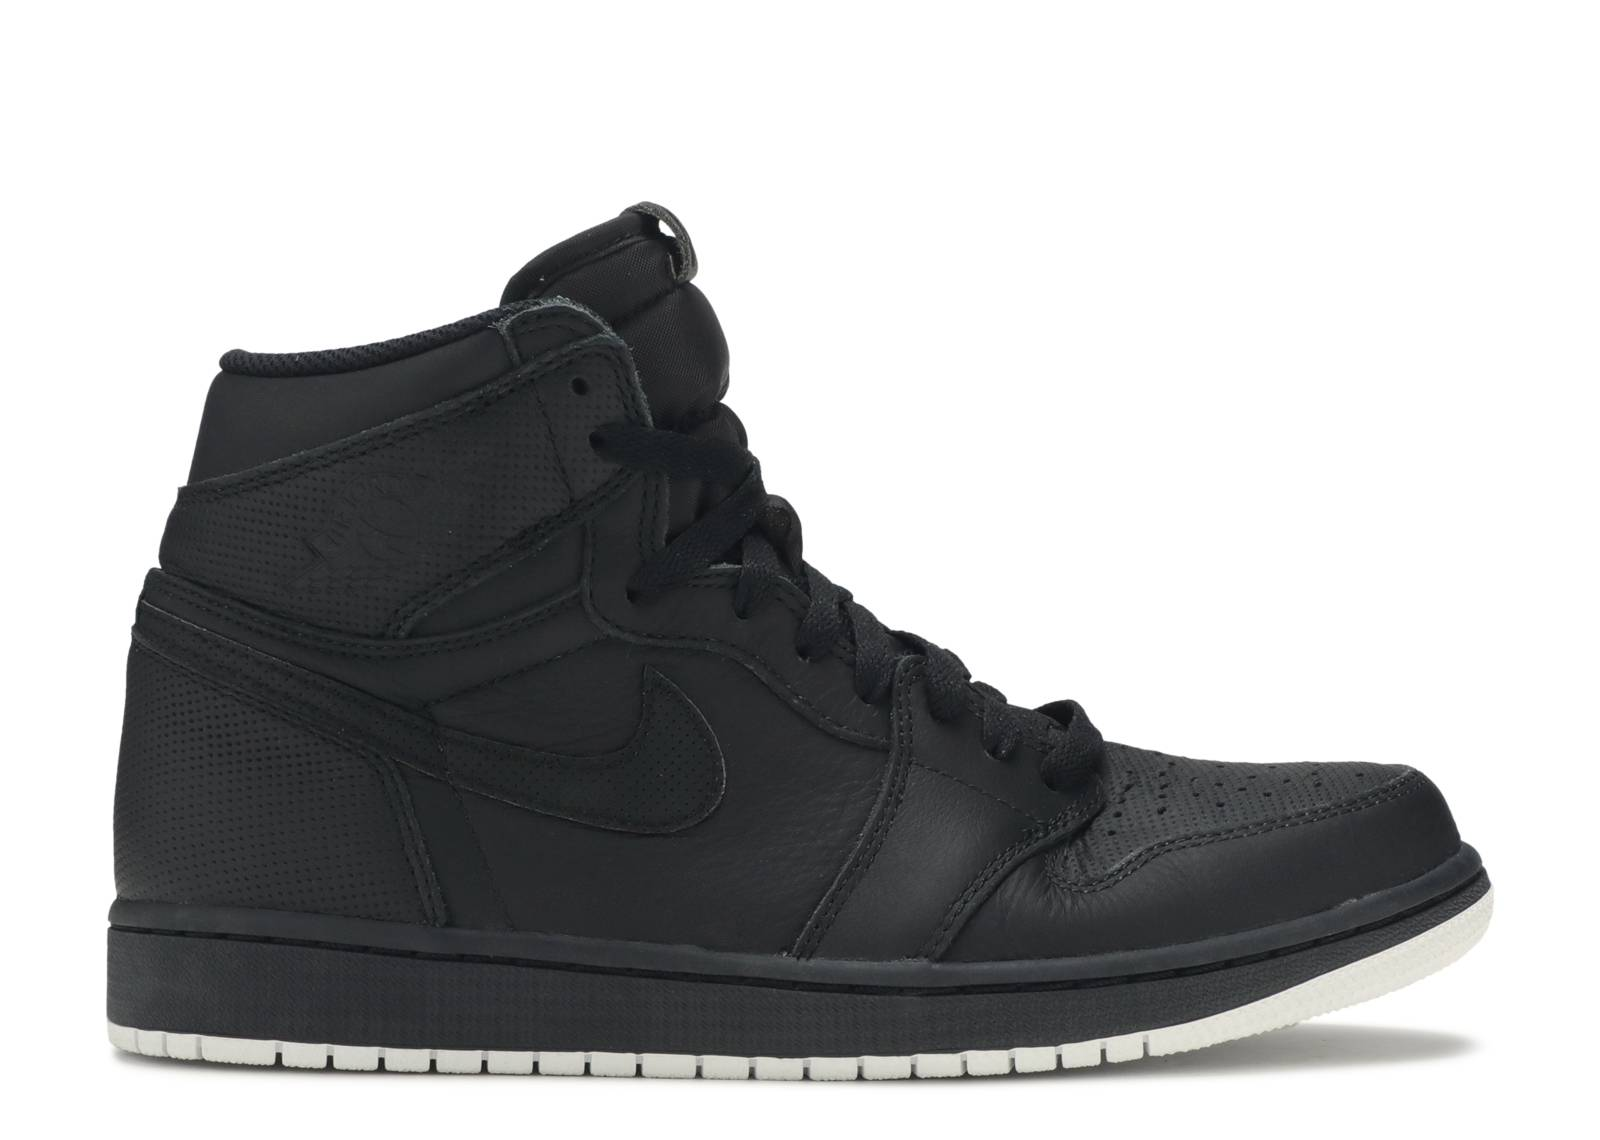 new arrival 73ae3 46b33 air jordan 1 retro high og